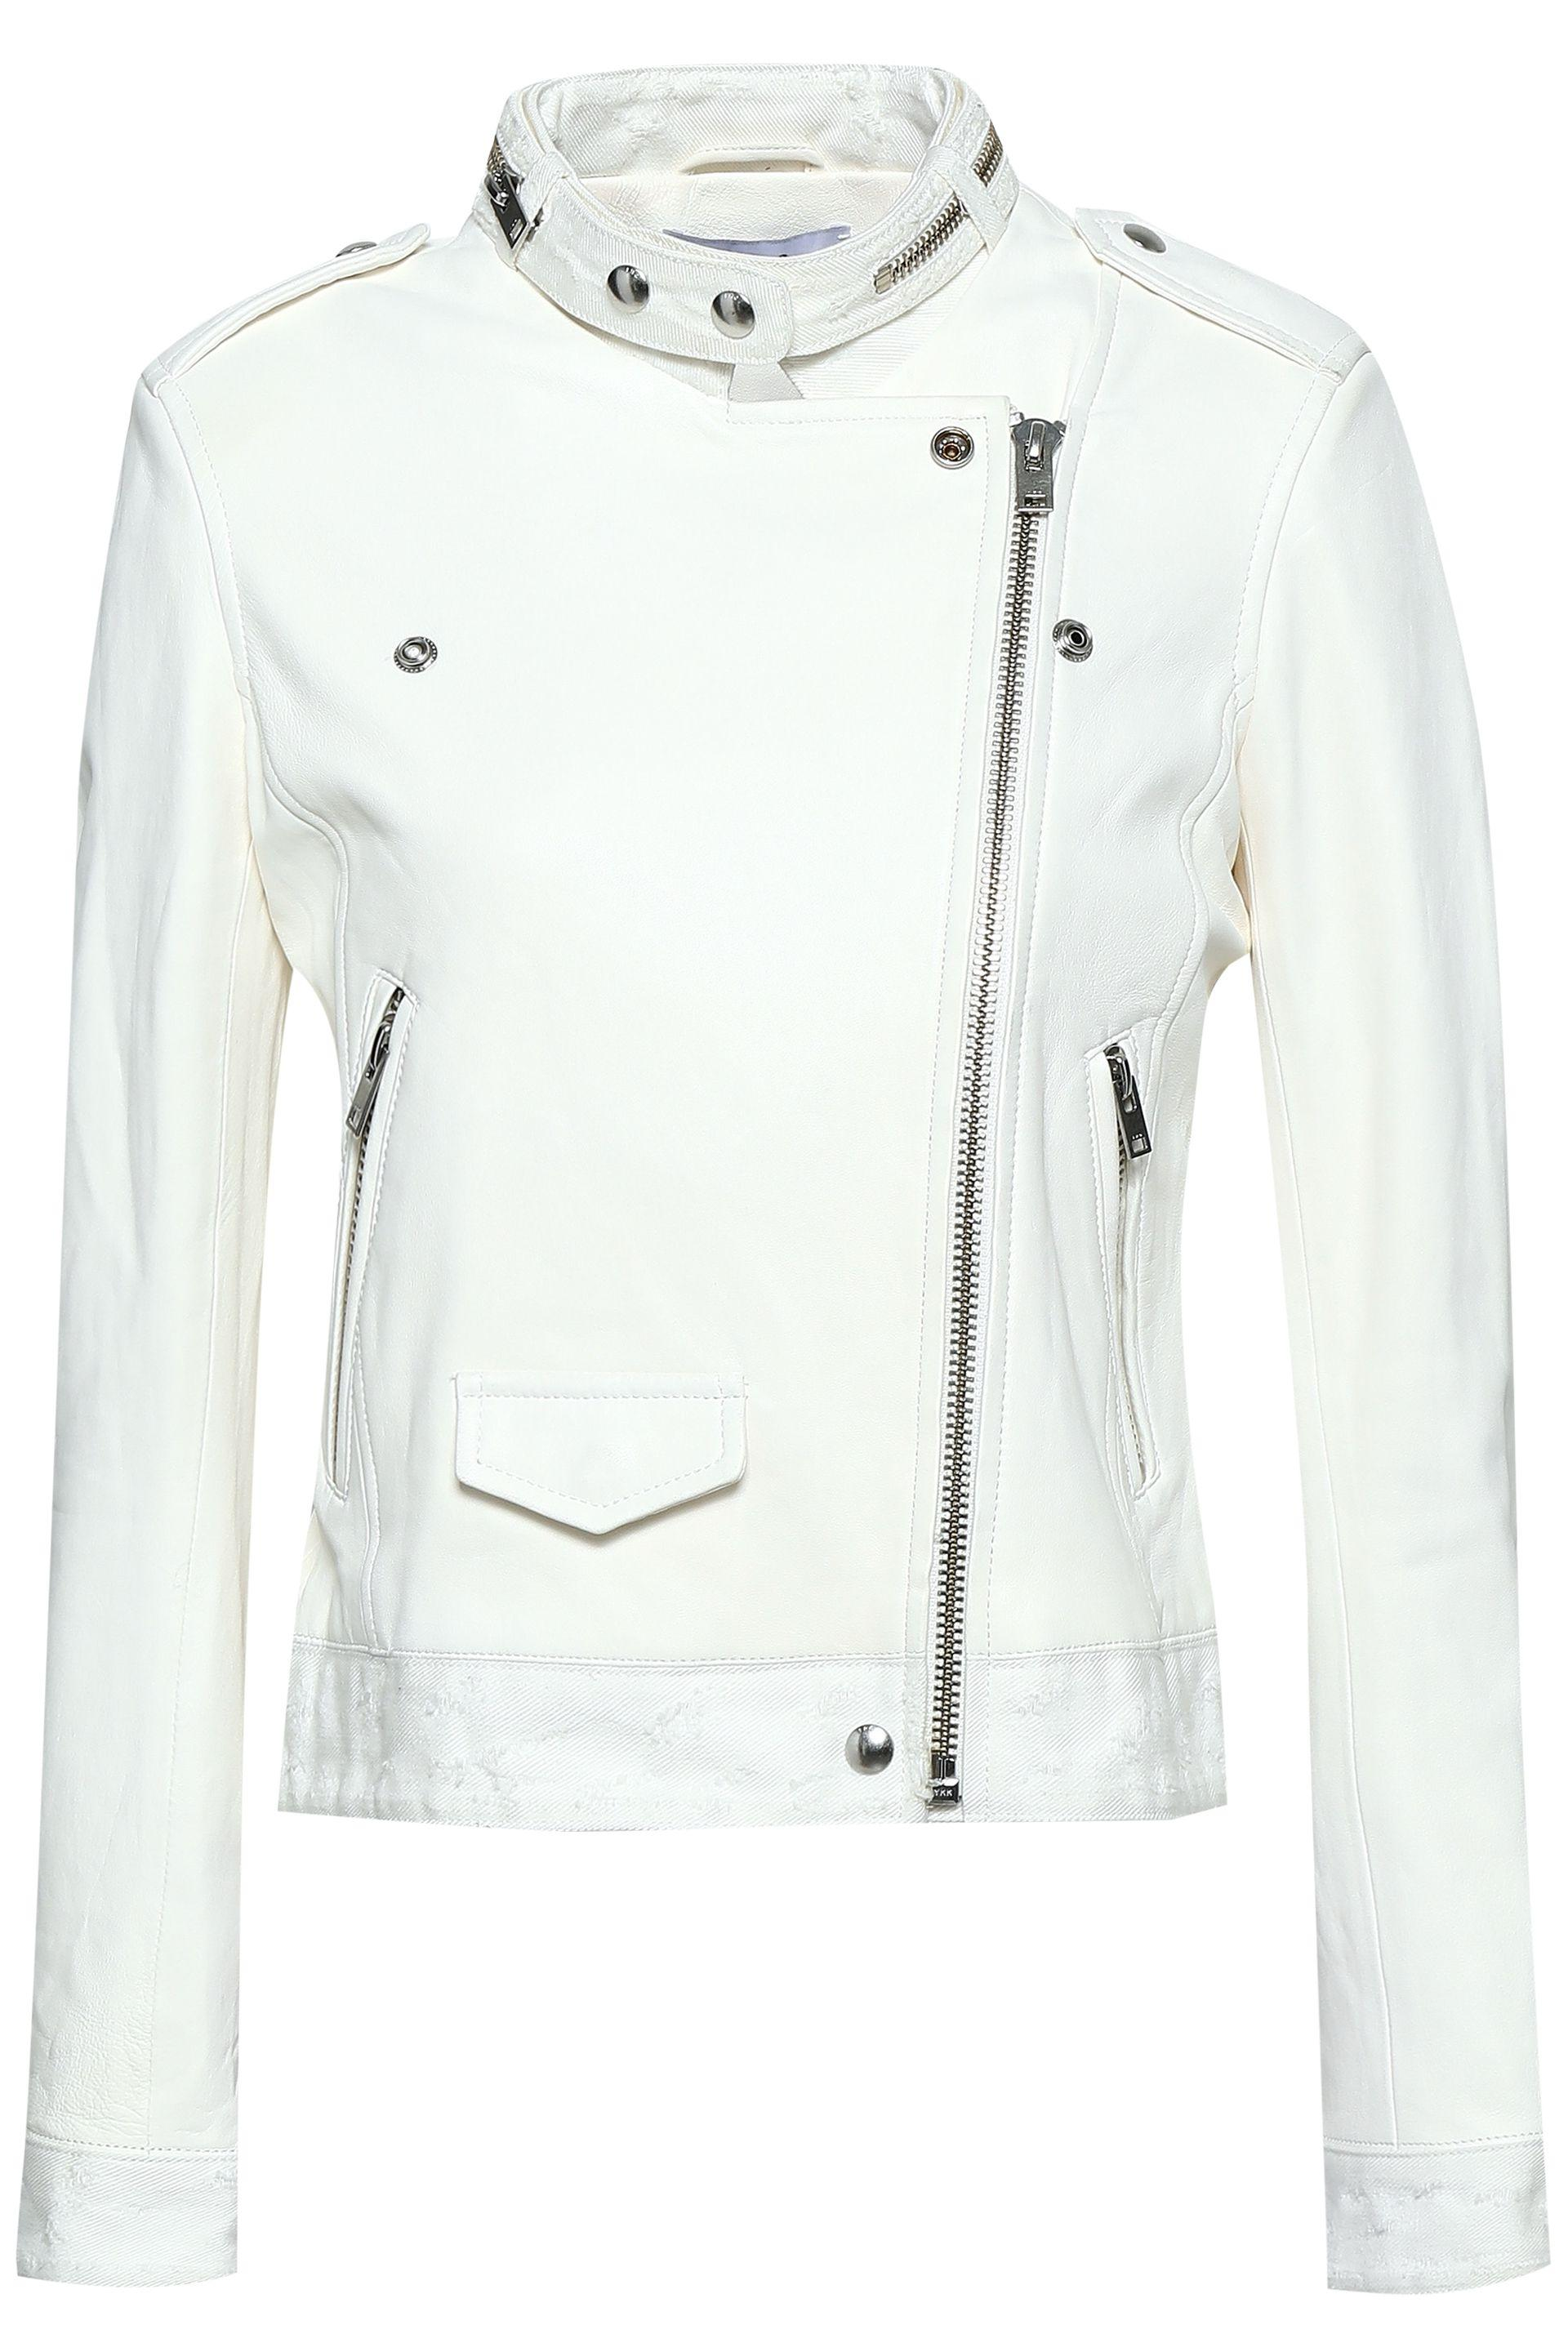 c8361a761c IRO Woman Distressed Denim-trimmed Leather Biker Jacket White in ...